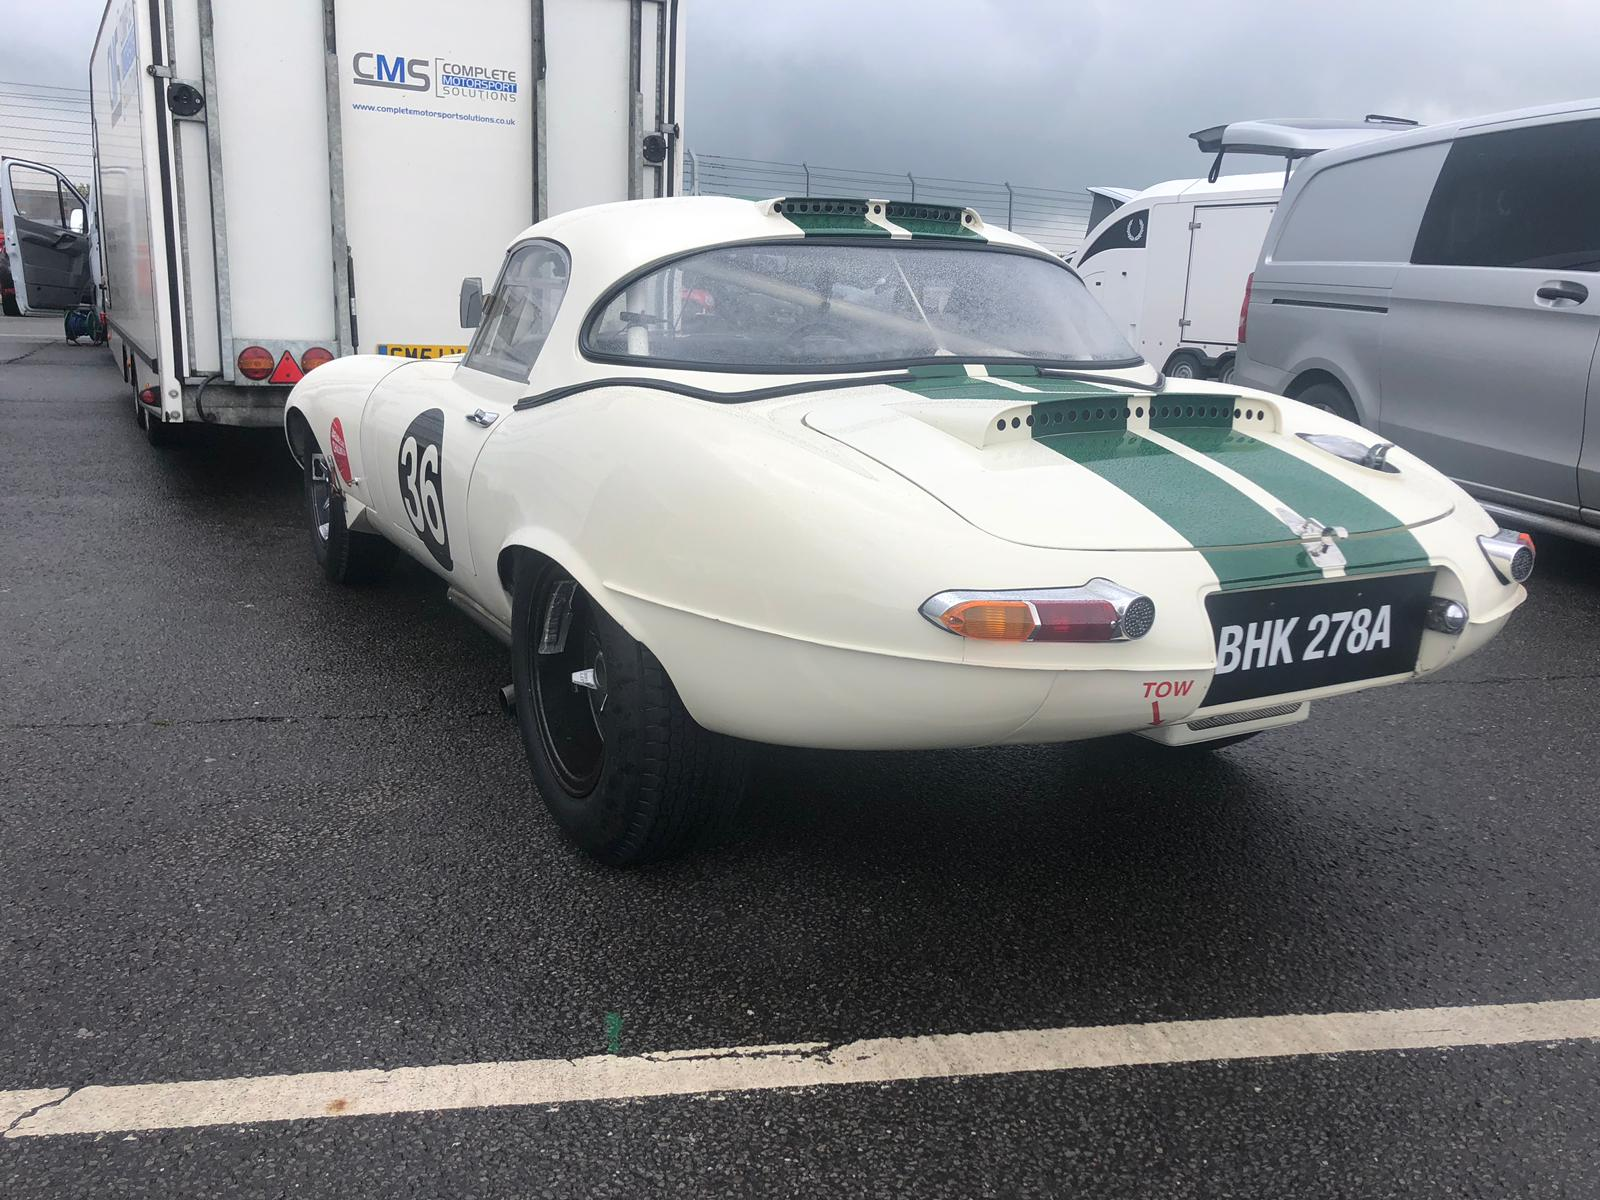 Ian Simmonds E-Type